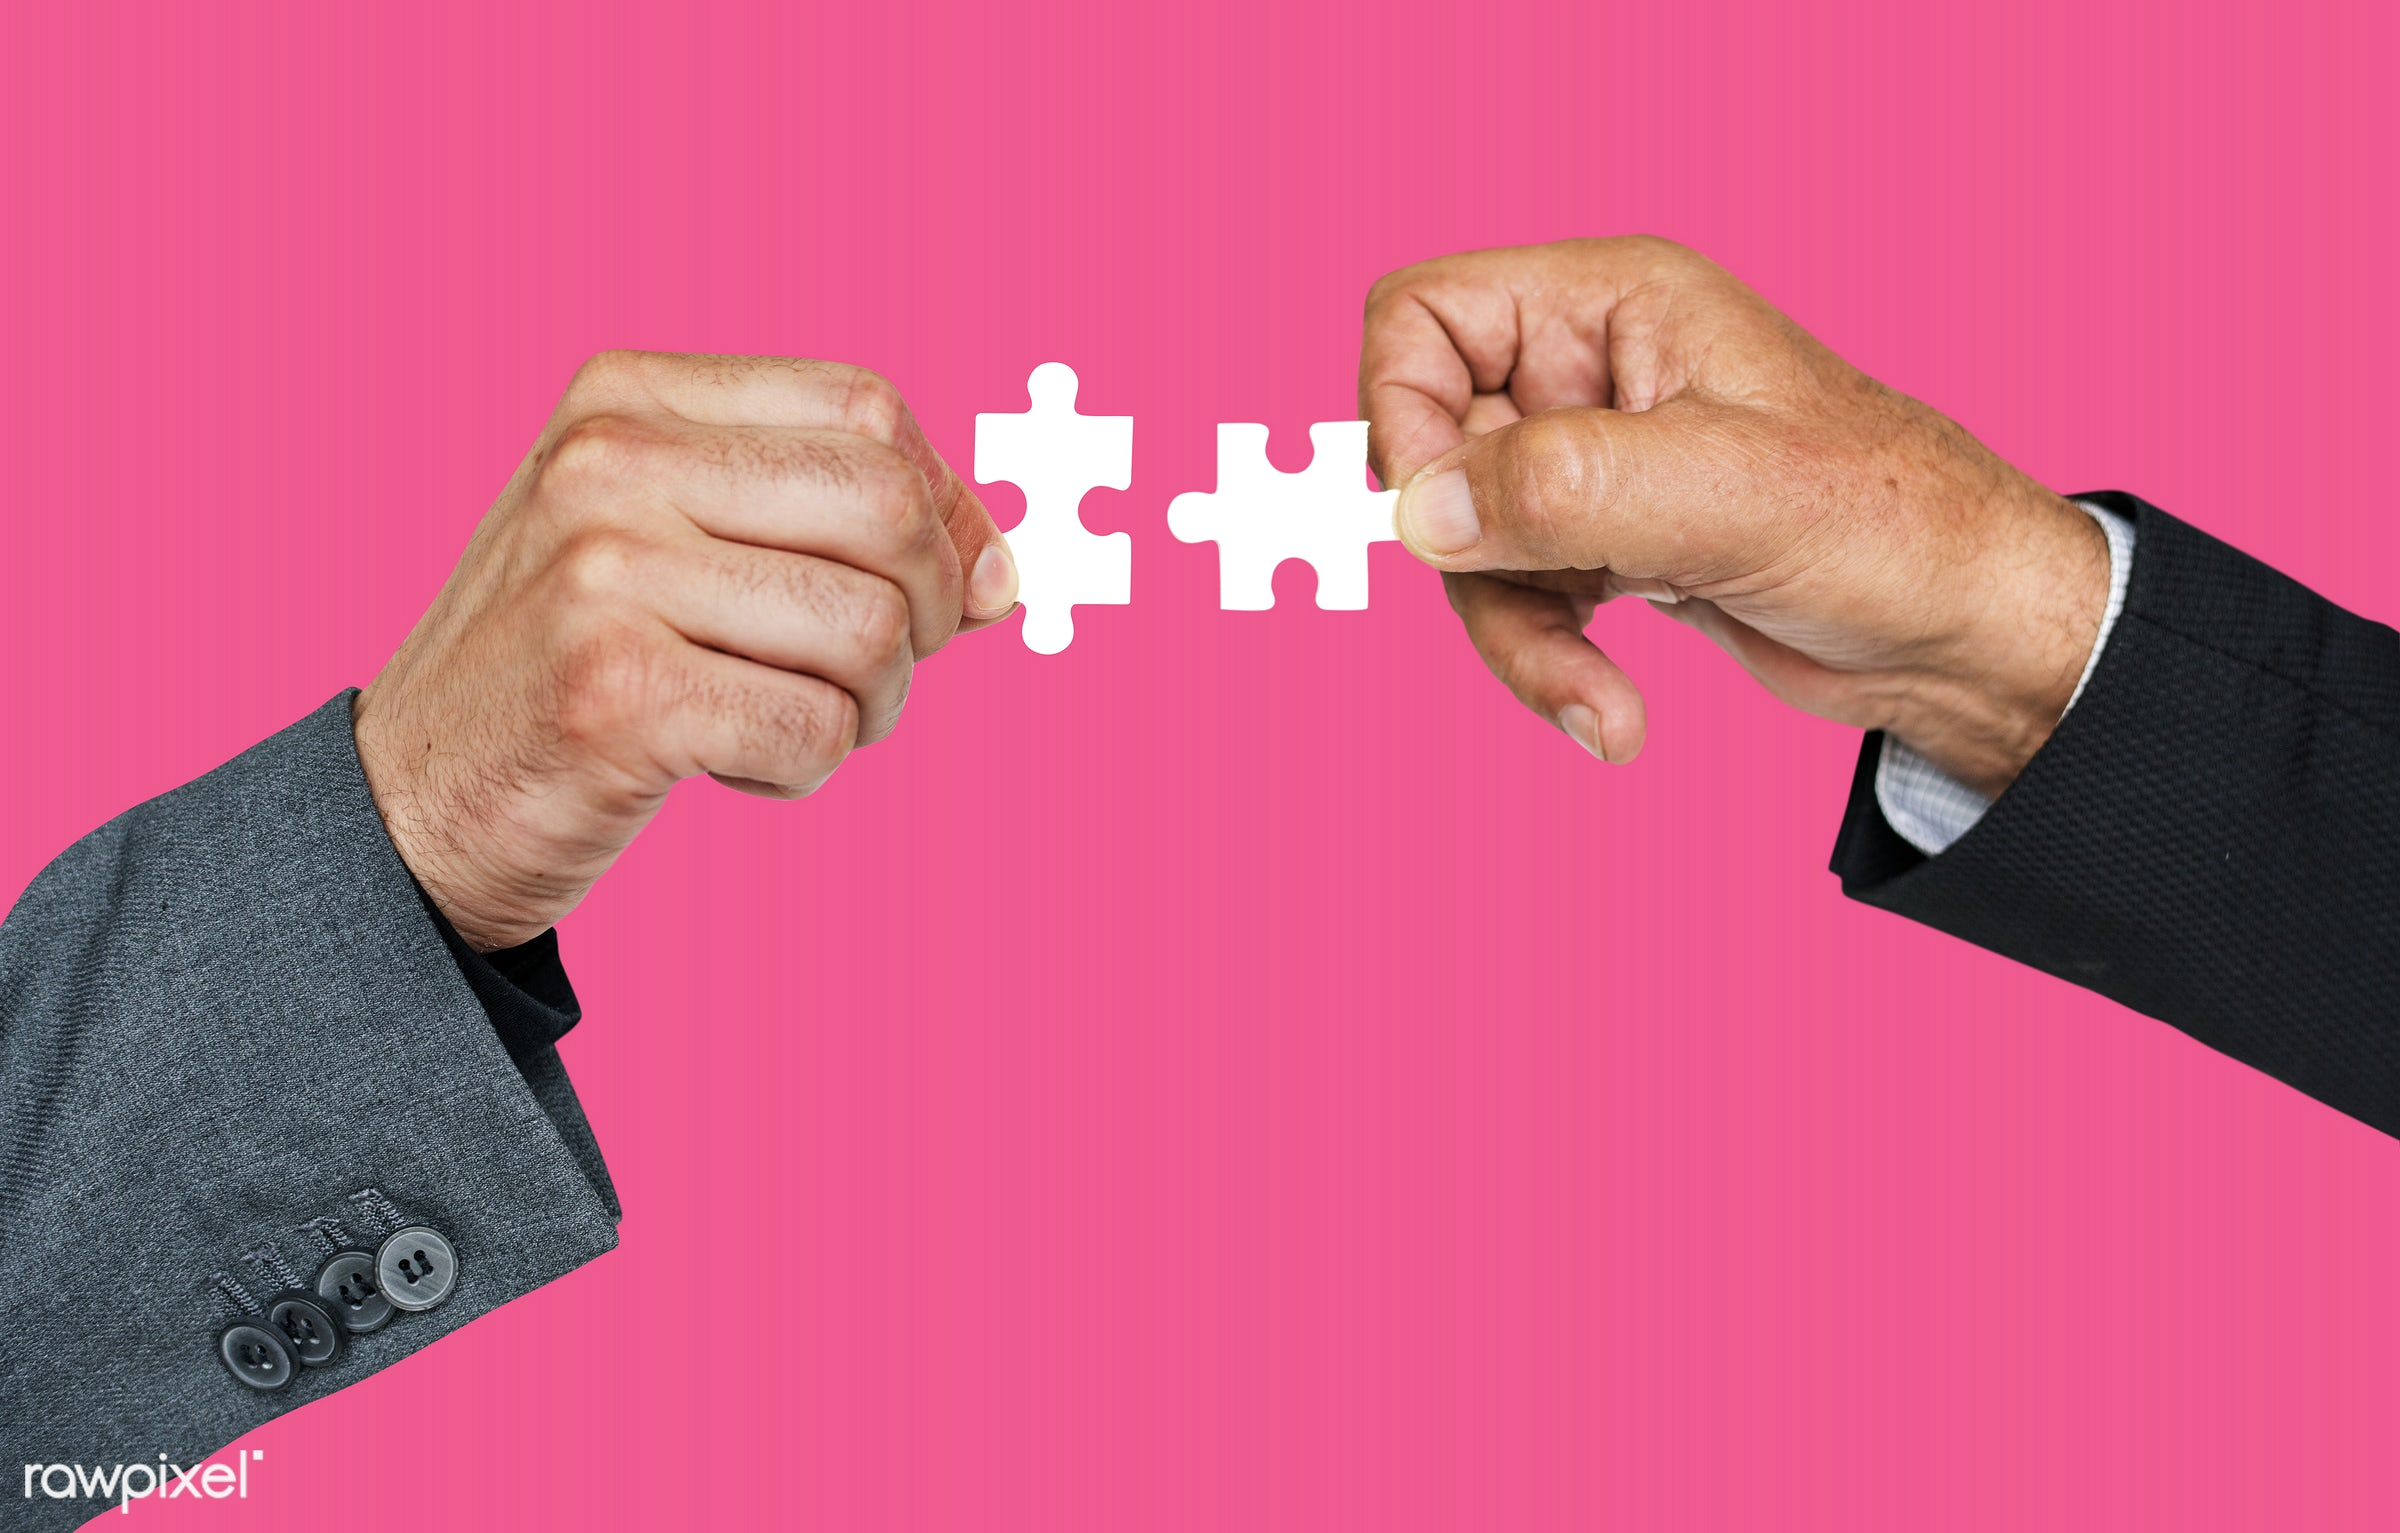 studio, jigsaw, jigsaw puzzle, holding, business, hand, corporate business, teamwork, action, cooperation, pink, motion,...